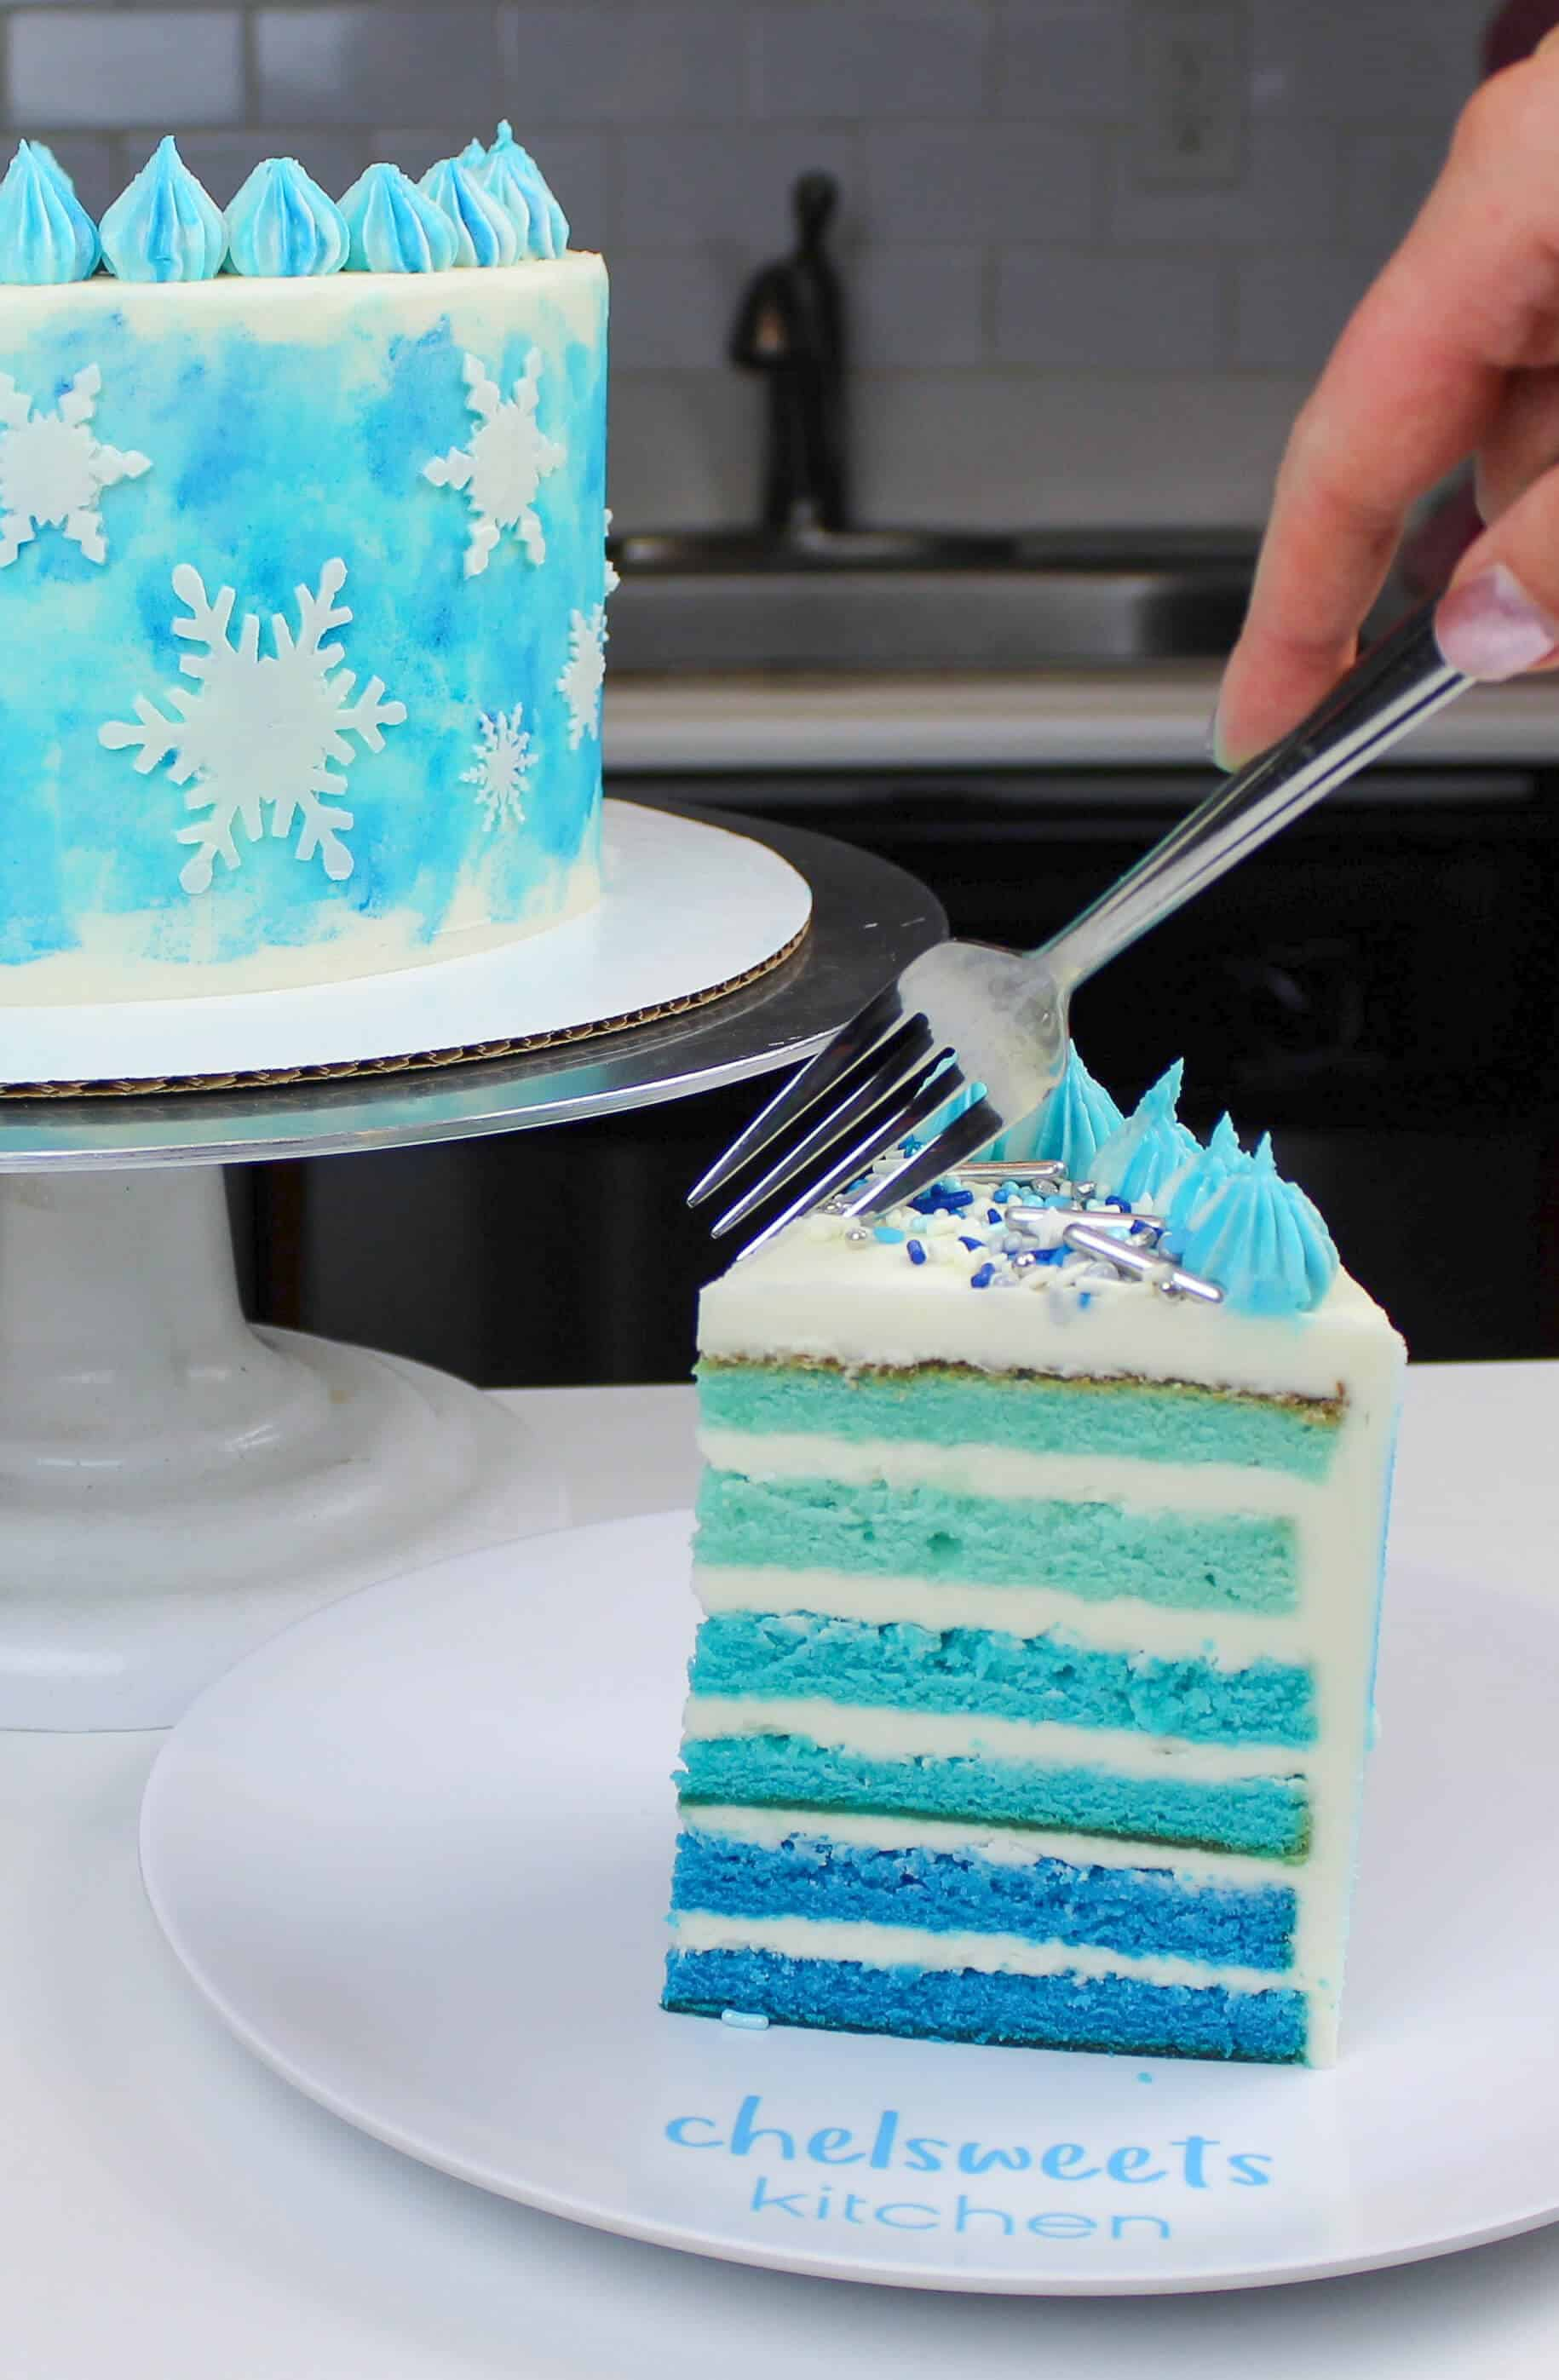 The perfect winter cake! An ombre blue cake decorated with buttercream snowflakes